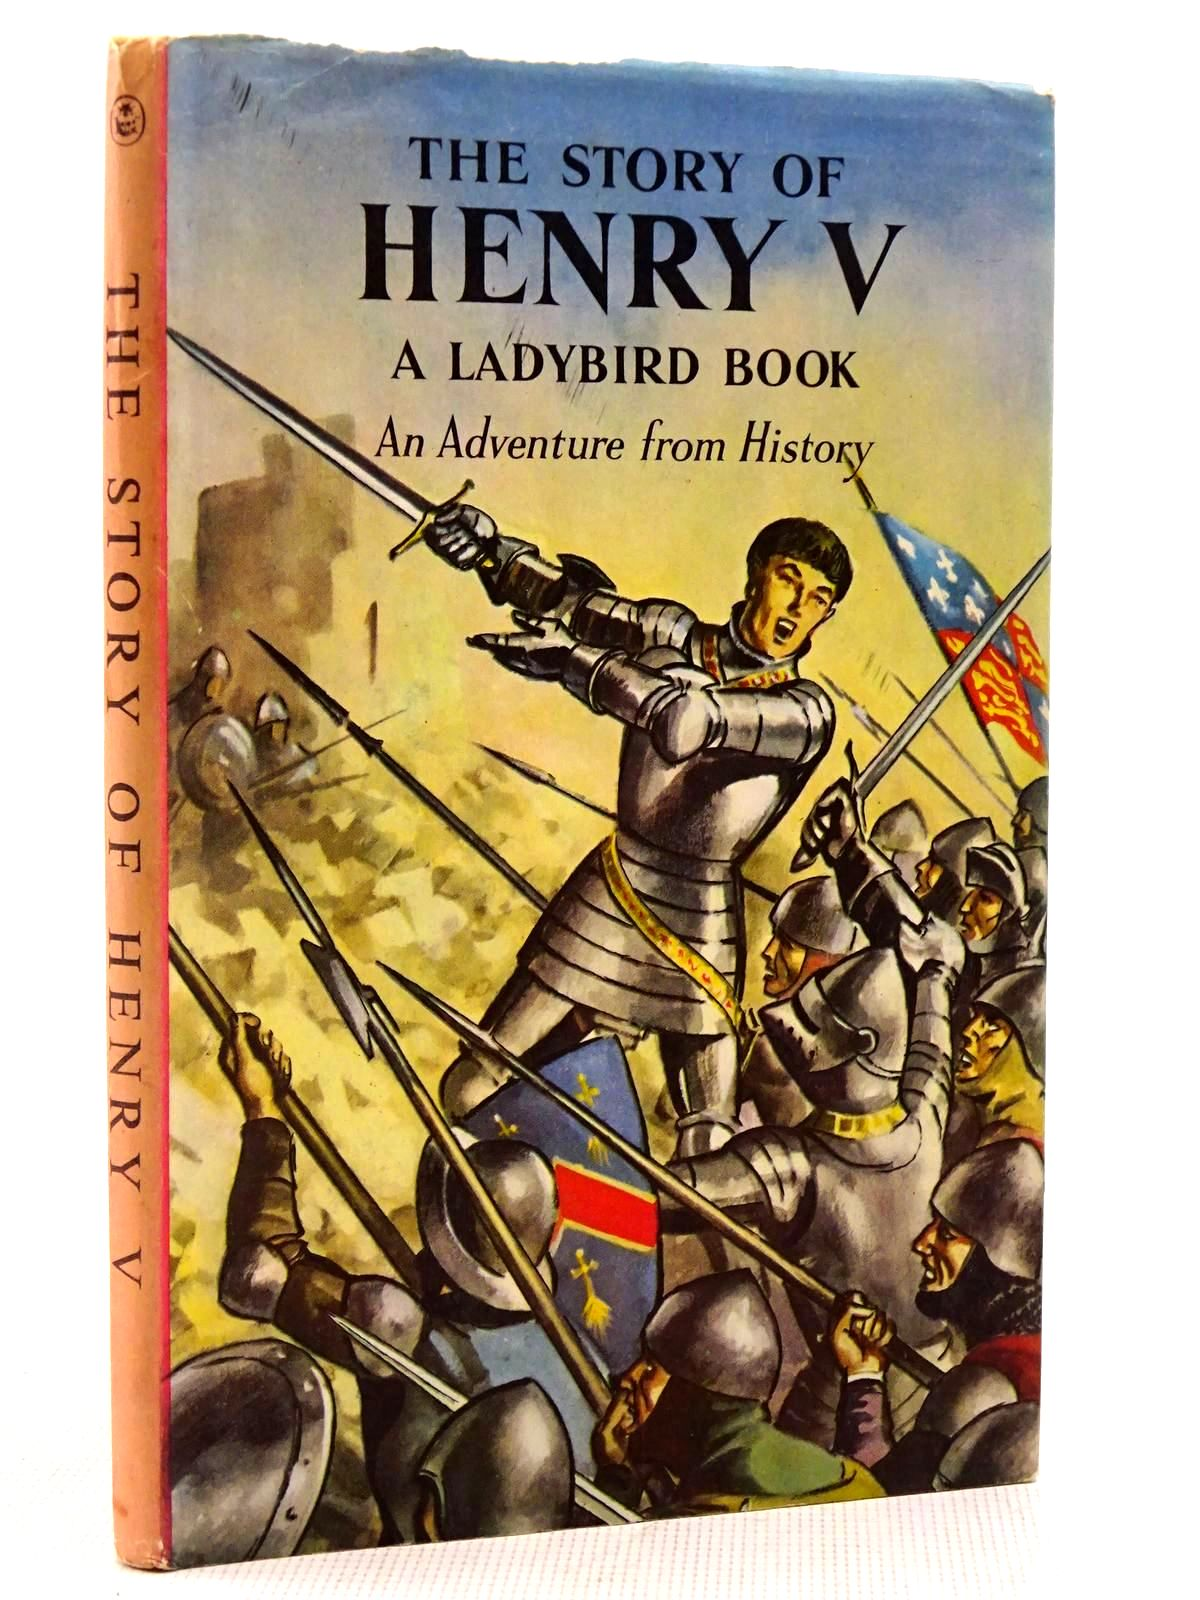 Photo of THE STORY OF HENRY V written by Peach, L. Du Garde illustrated by Kenney, John published by Wills & Hepworth Ltd. (STOCK CODE: 2129194)  for sale by Stella & Rose's Books